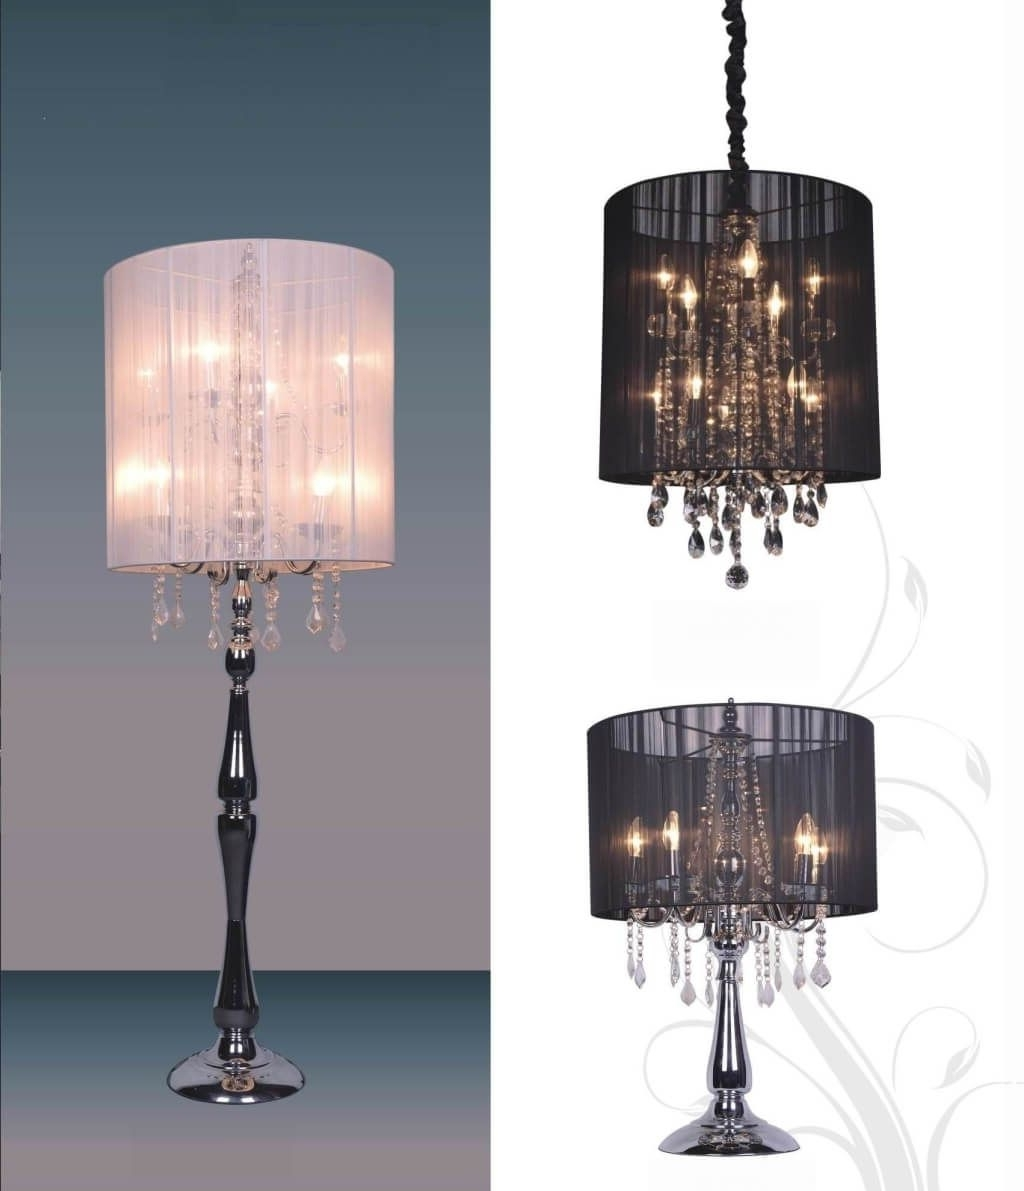 Image Gallery Of Mini Chandelier Table Lamps View 3 Of 20 Photos